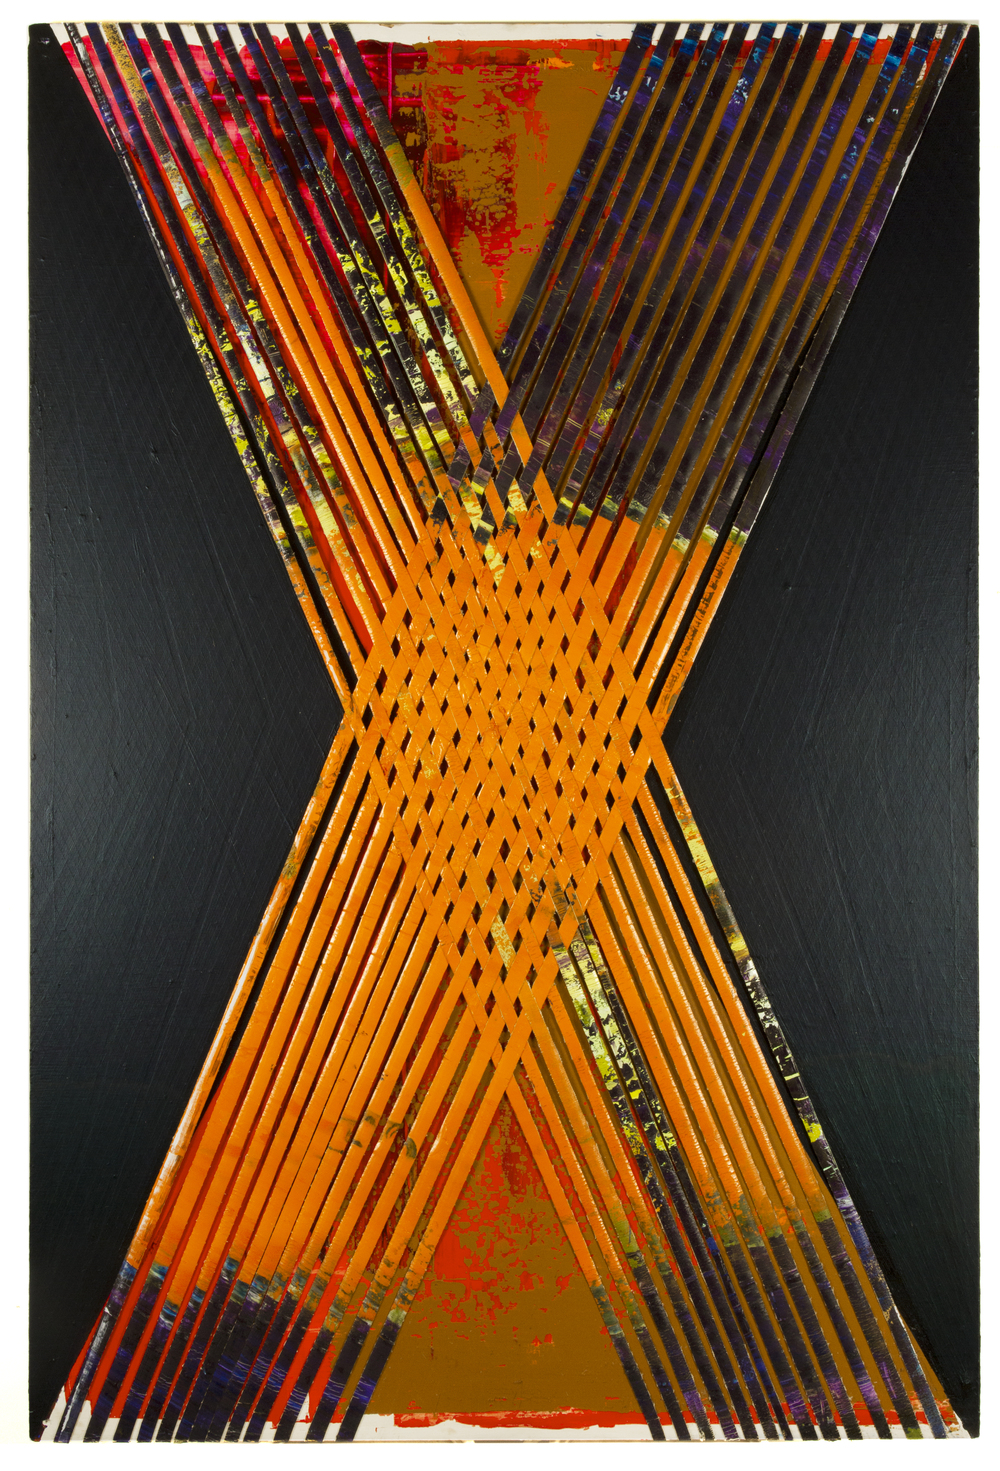 orange ex, 2015, oil oncanvas strips and acrylic on plywood, 32 x 48